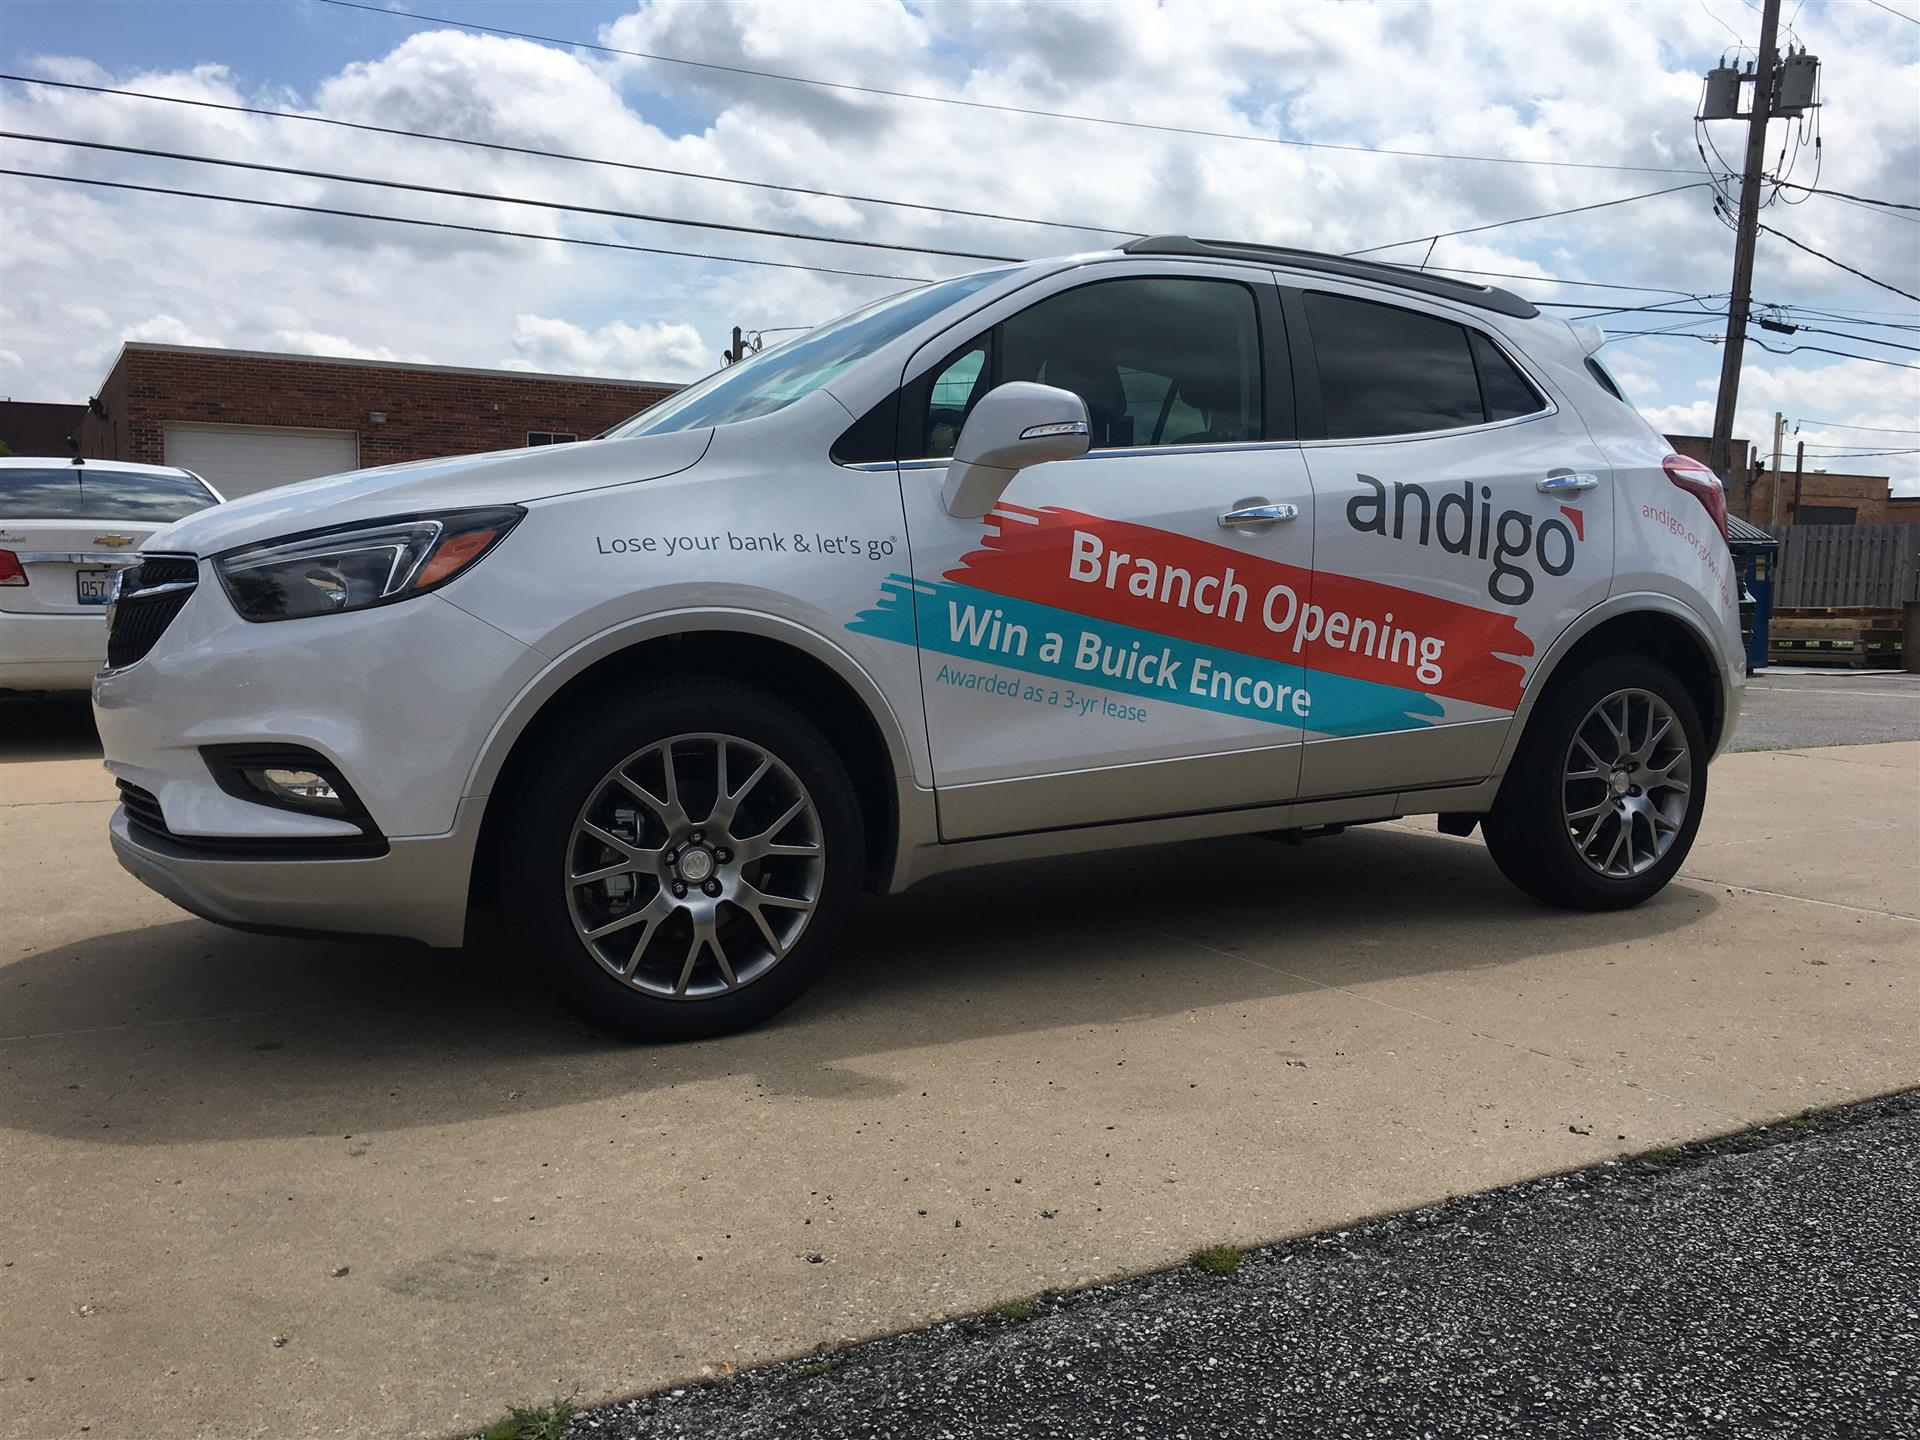 Andigo Vehicle Wrap